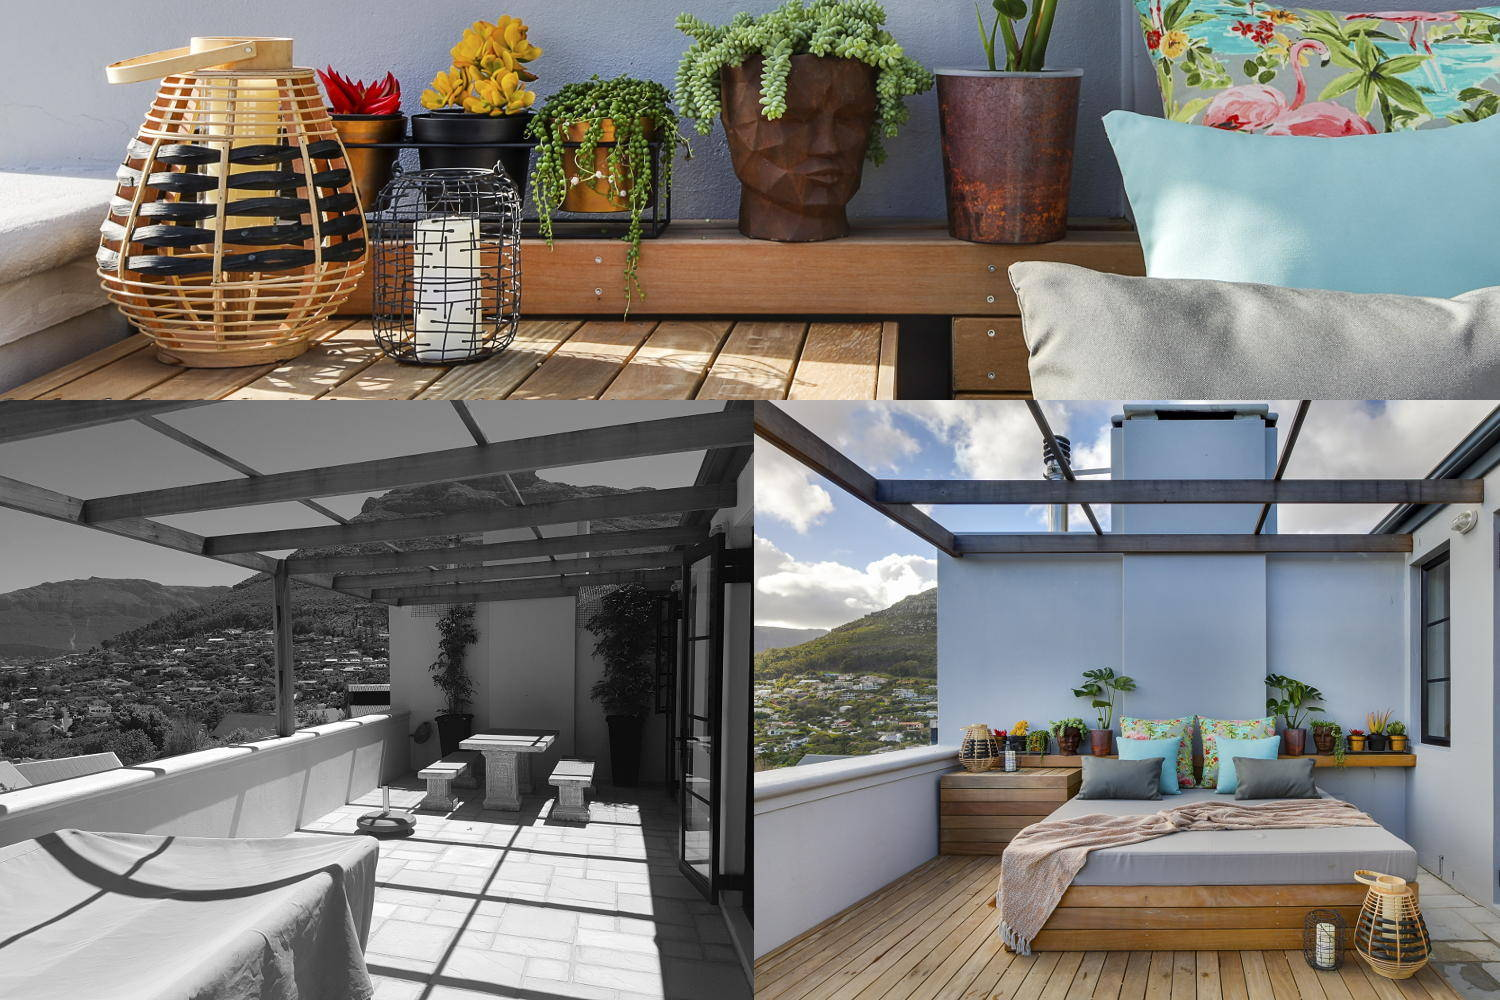 Scott Estate Hout Bay Onnah Design Viewing Deck Before and After